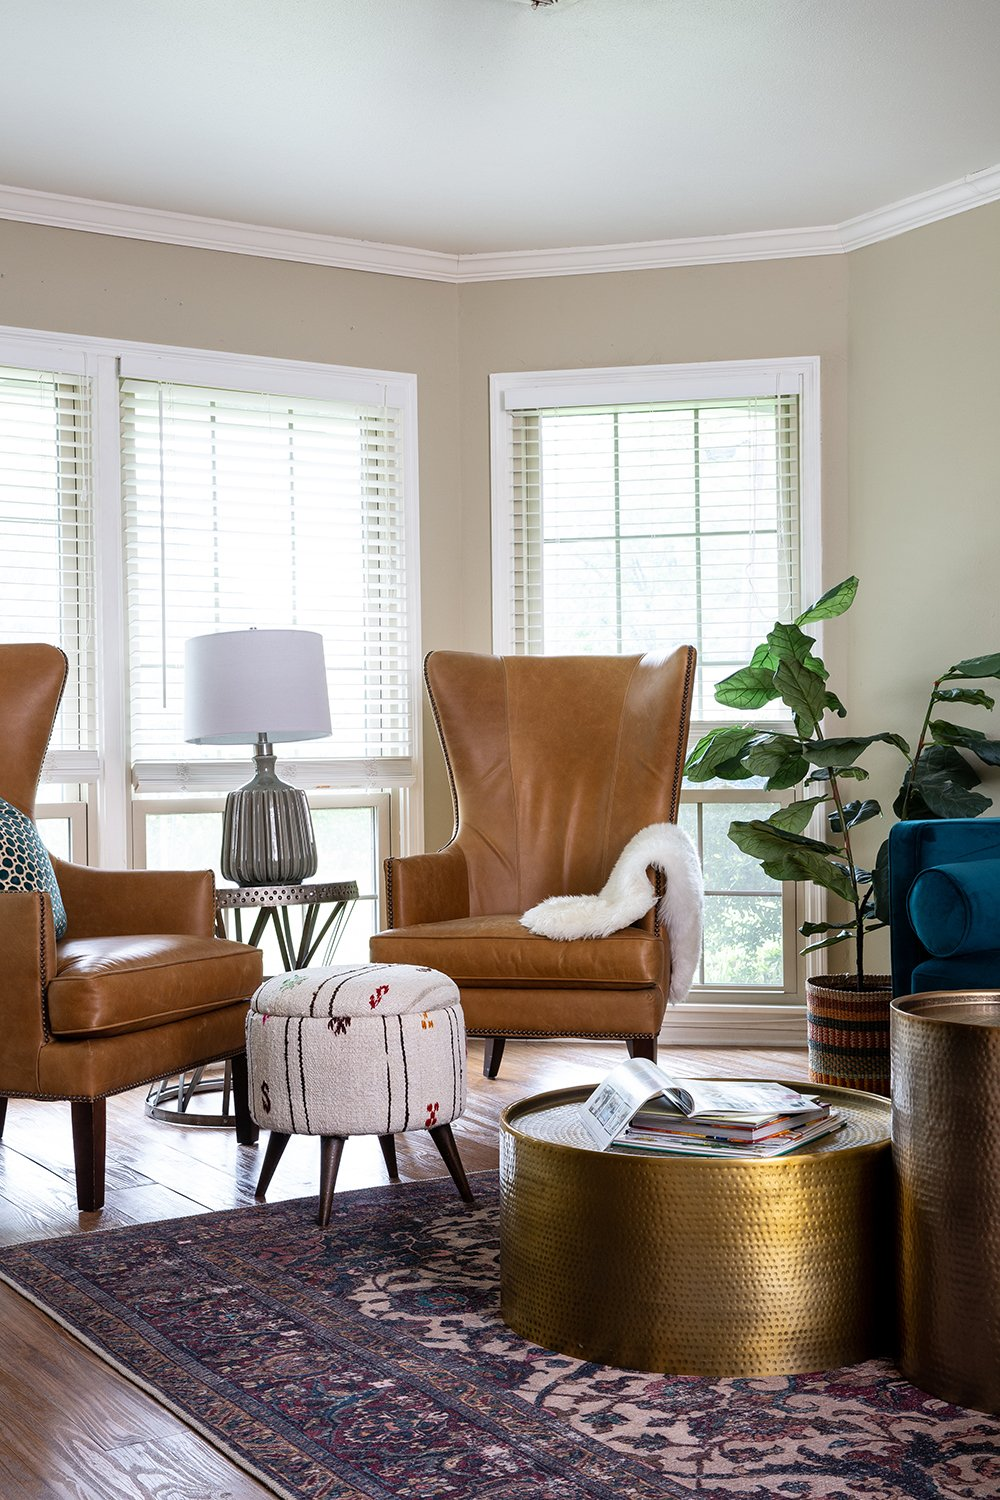 Before and After: A Family-Friendly Texas Living Room with Leather Accent Chairs by interior designer Lesley Myrick